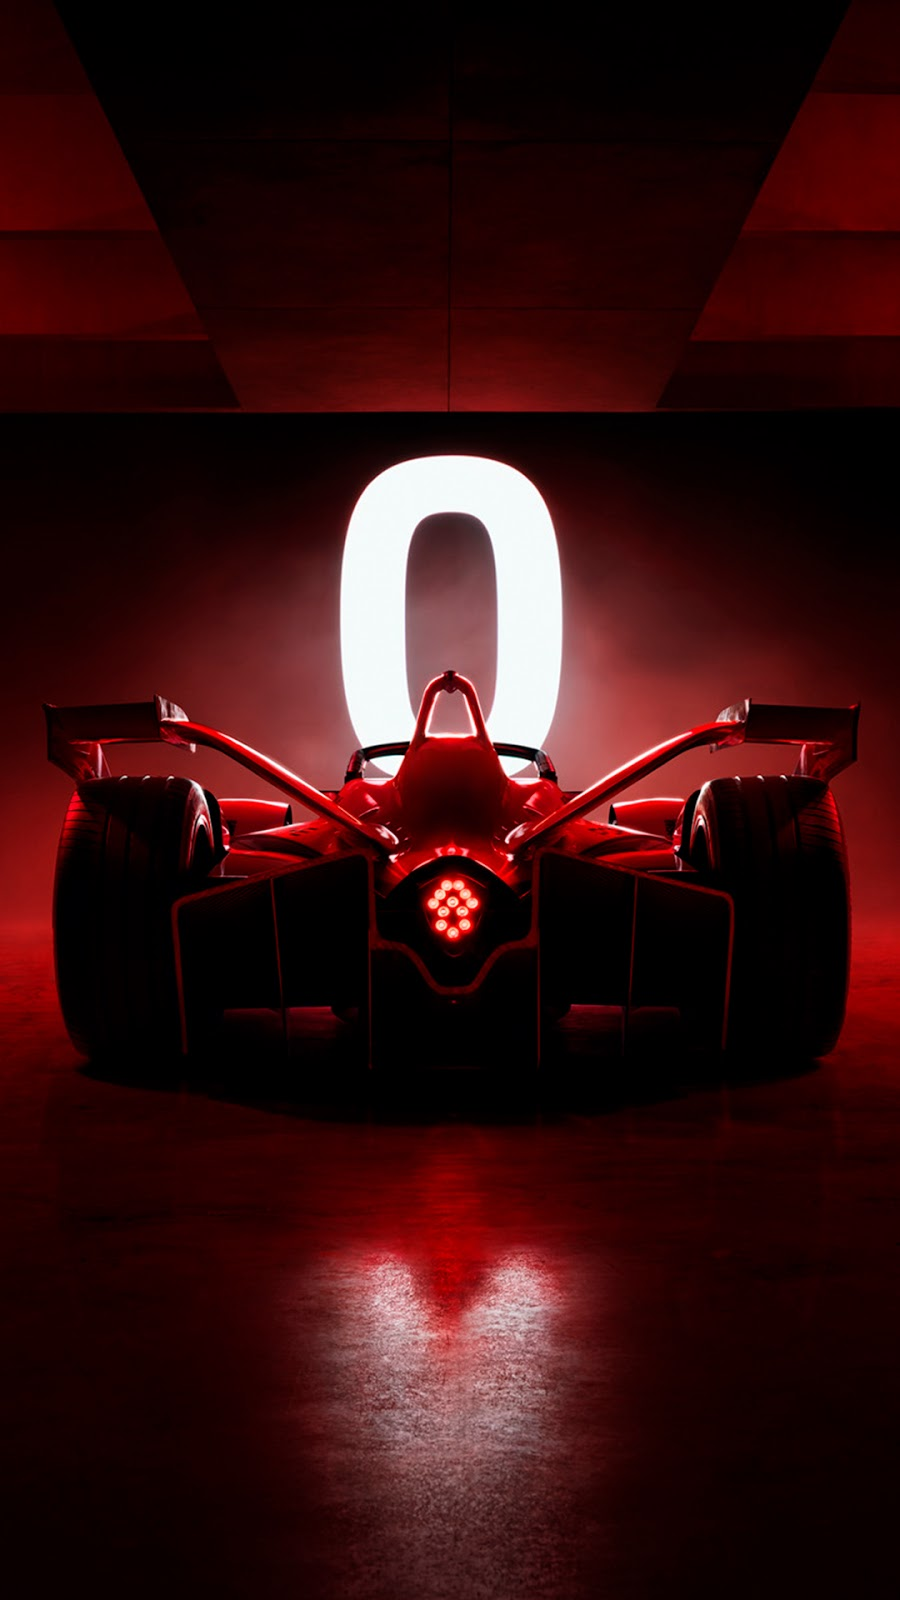 formula one racing wallpaper